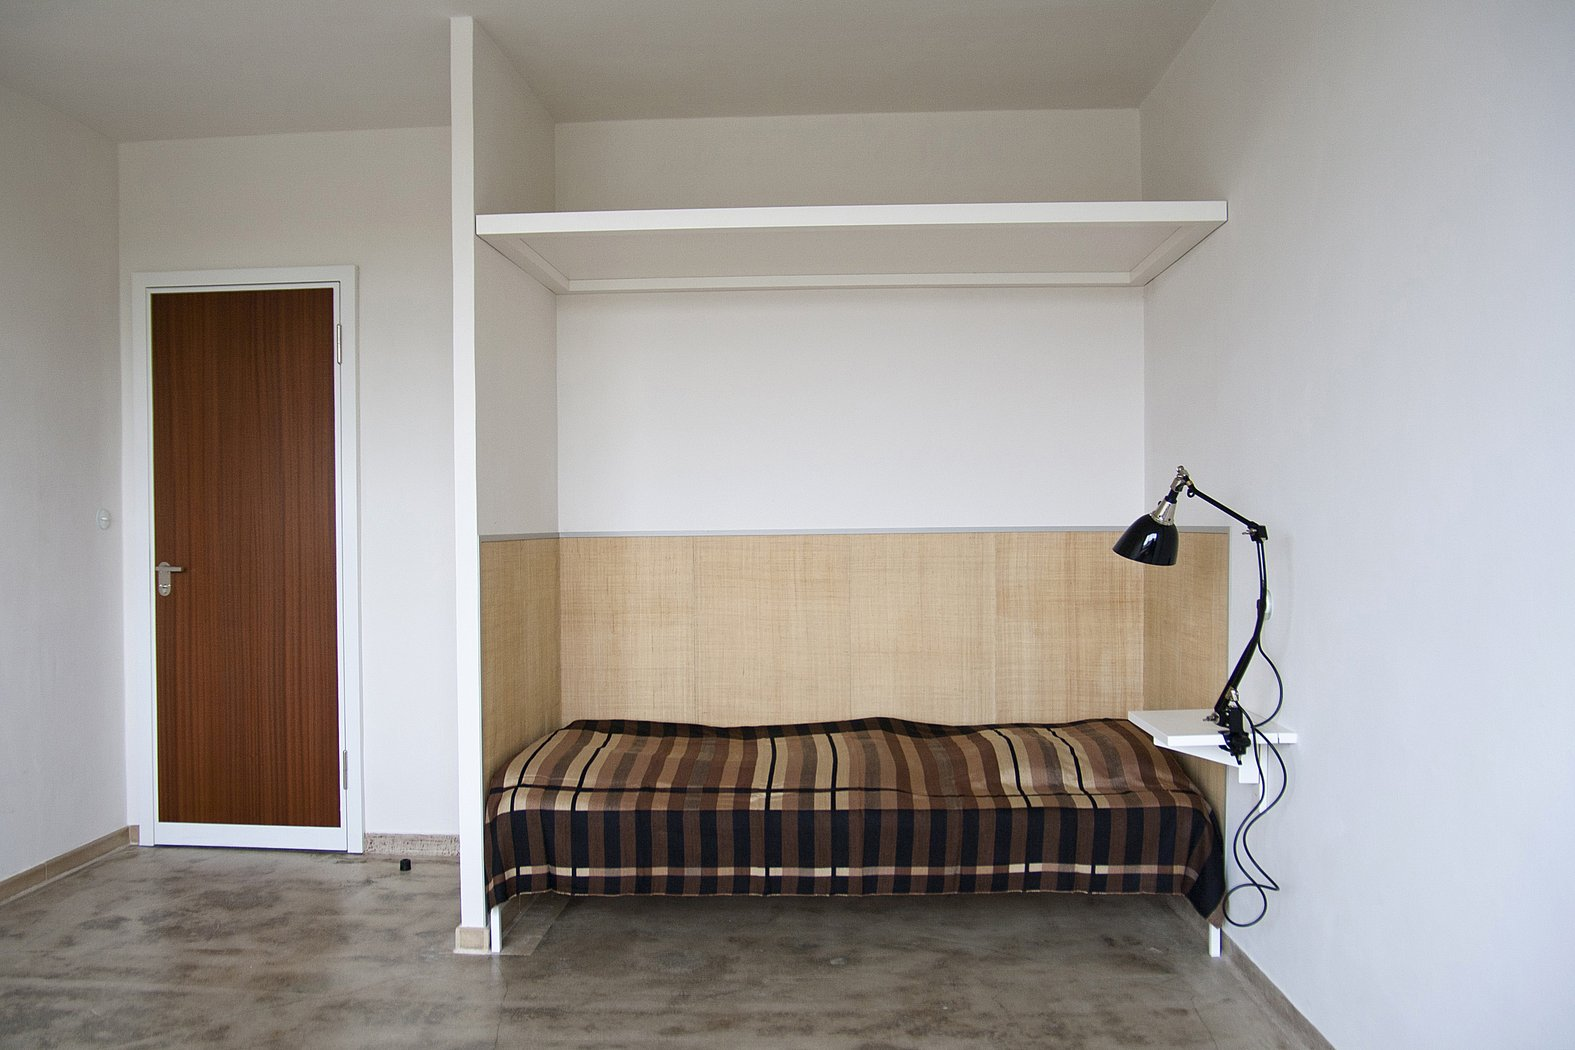 Stay Overnight At The Bauhaus Stay In A World Cultural Heritage Site Sleeping At Bauhaus Stiftung Bauhaus Dessau Bauhaus Dessau Foundation